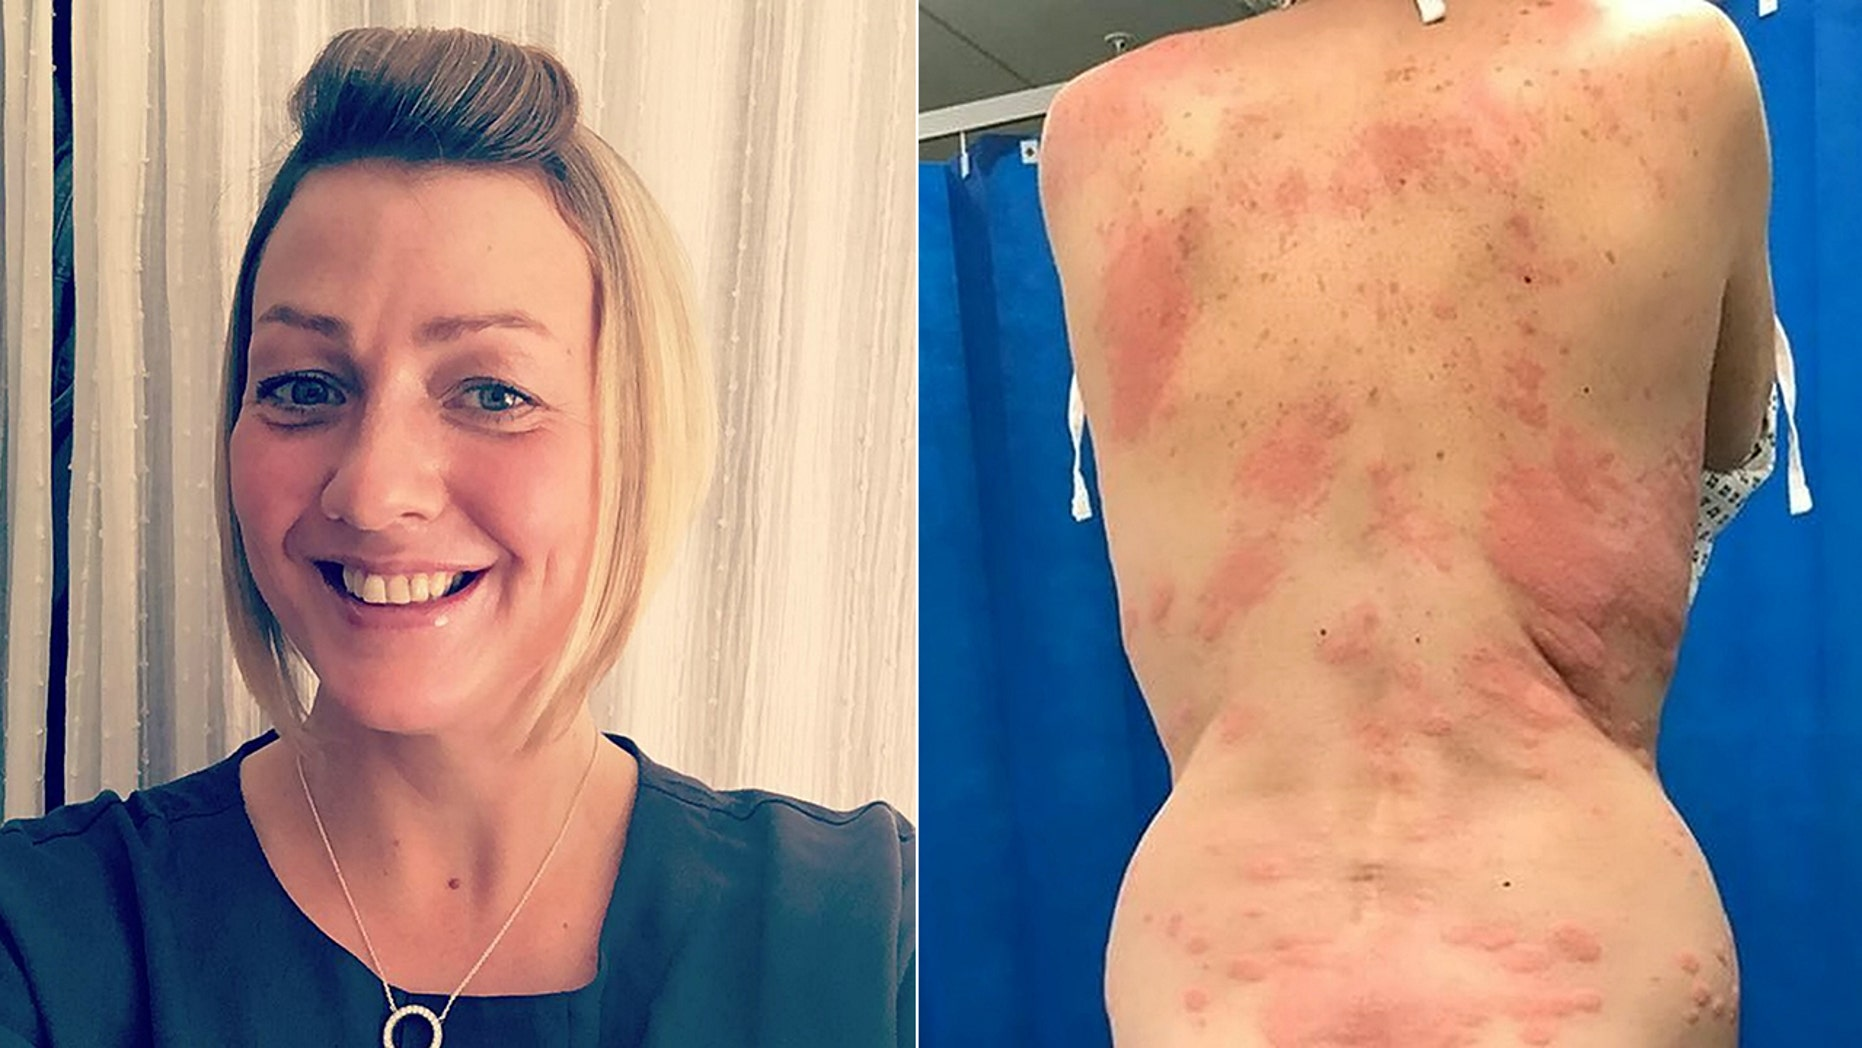 Woman claims allergic reaction to vape caused painful rash